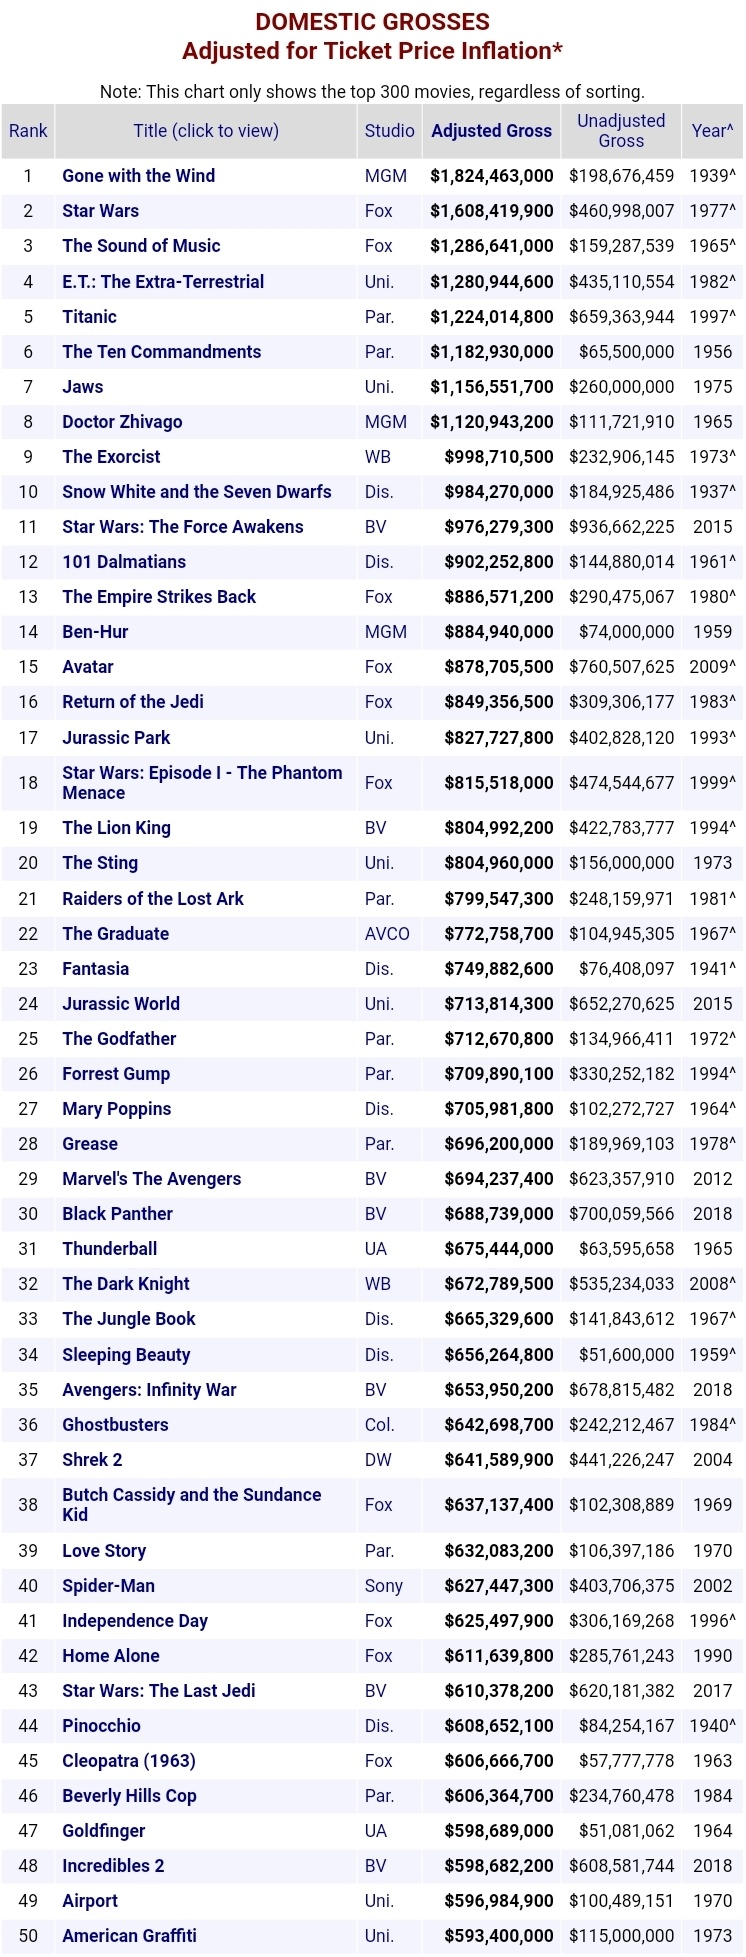 What were Disney's biggest hits? I for sure knew Frozen was